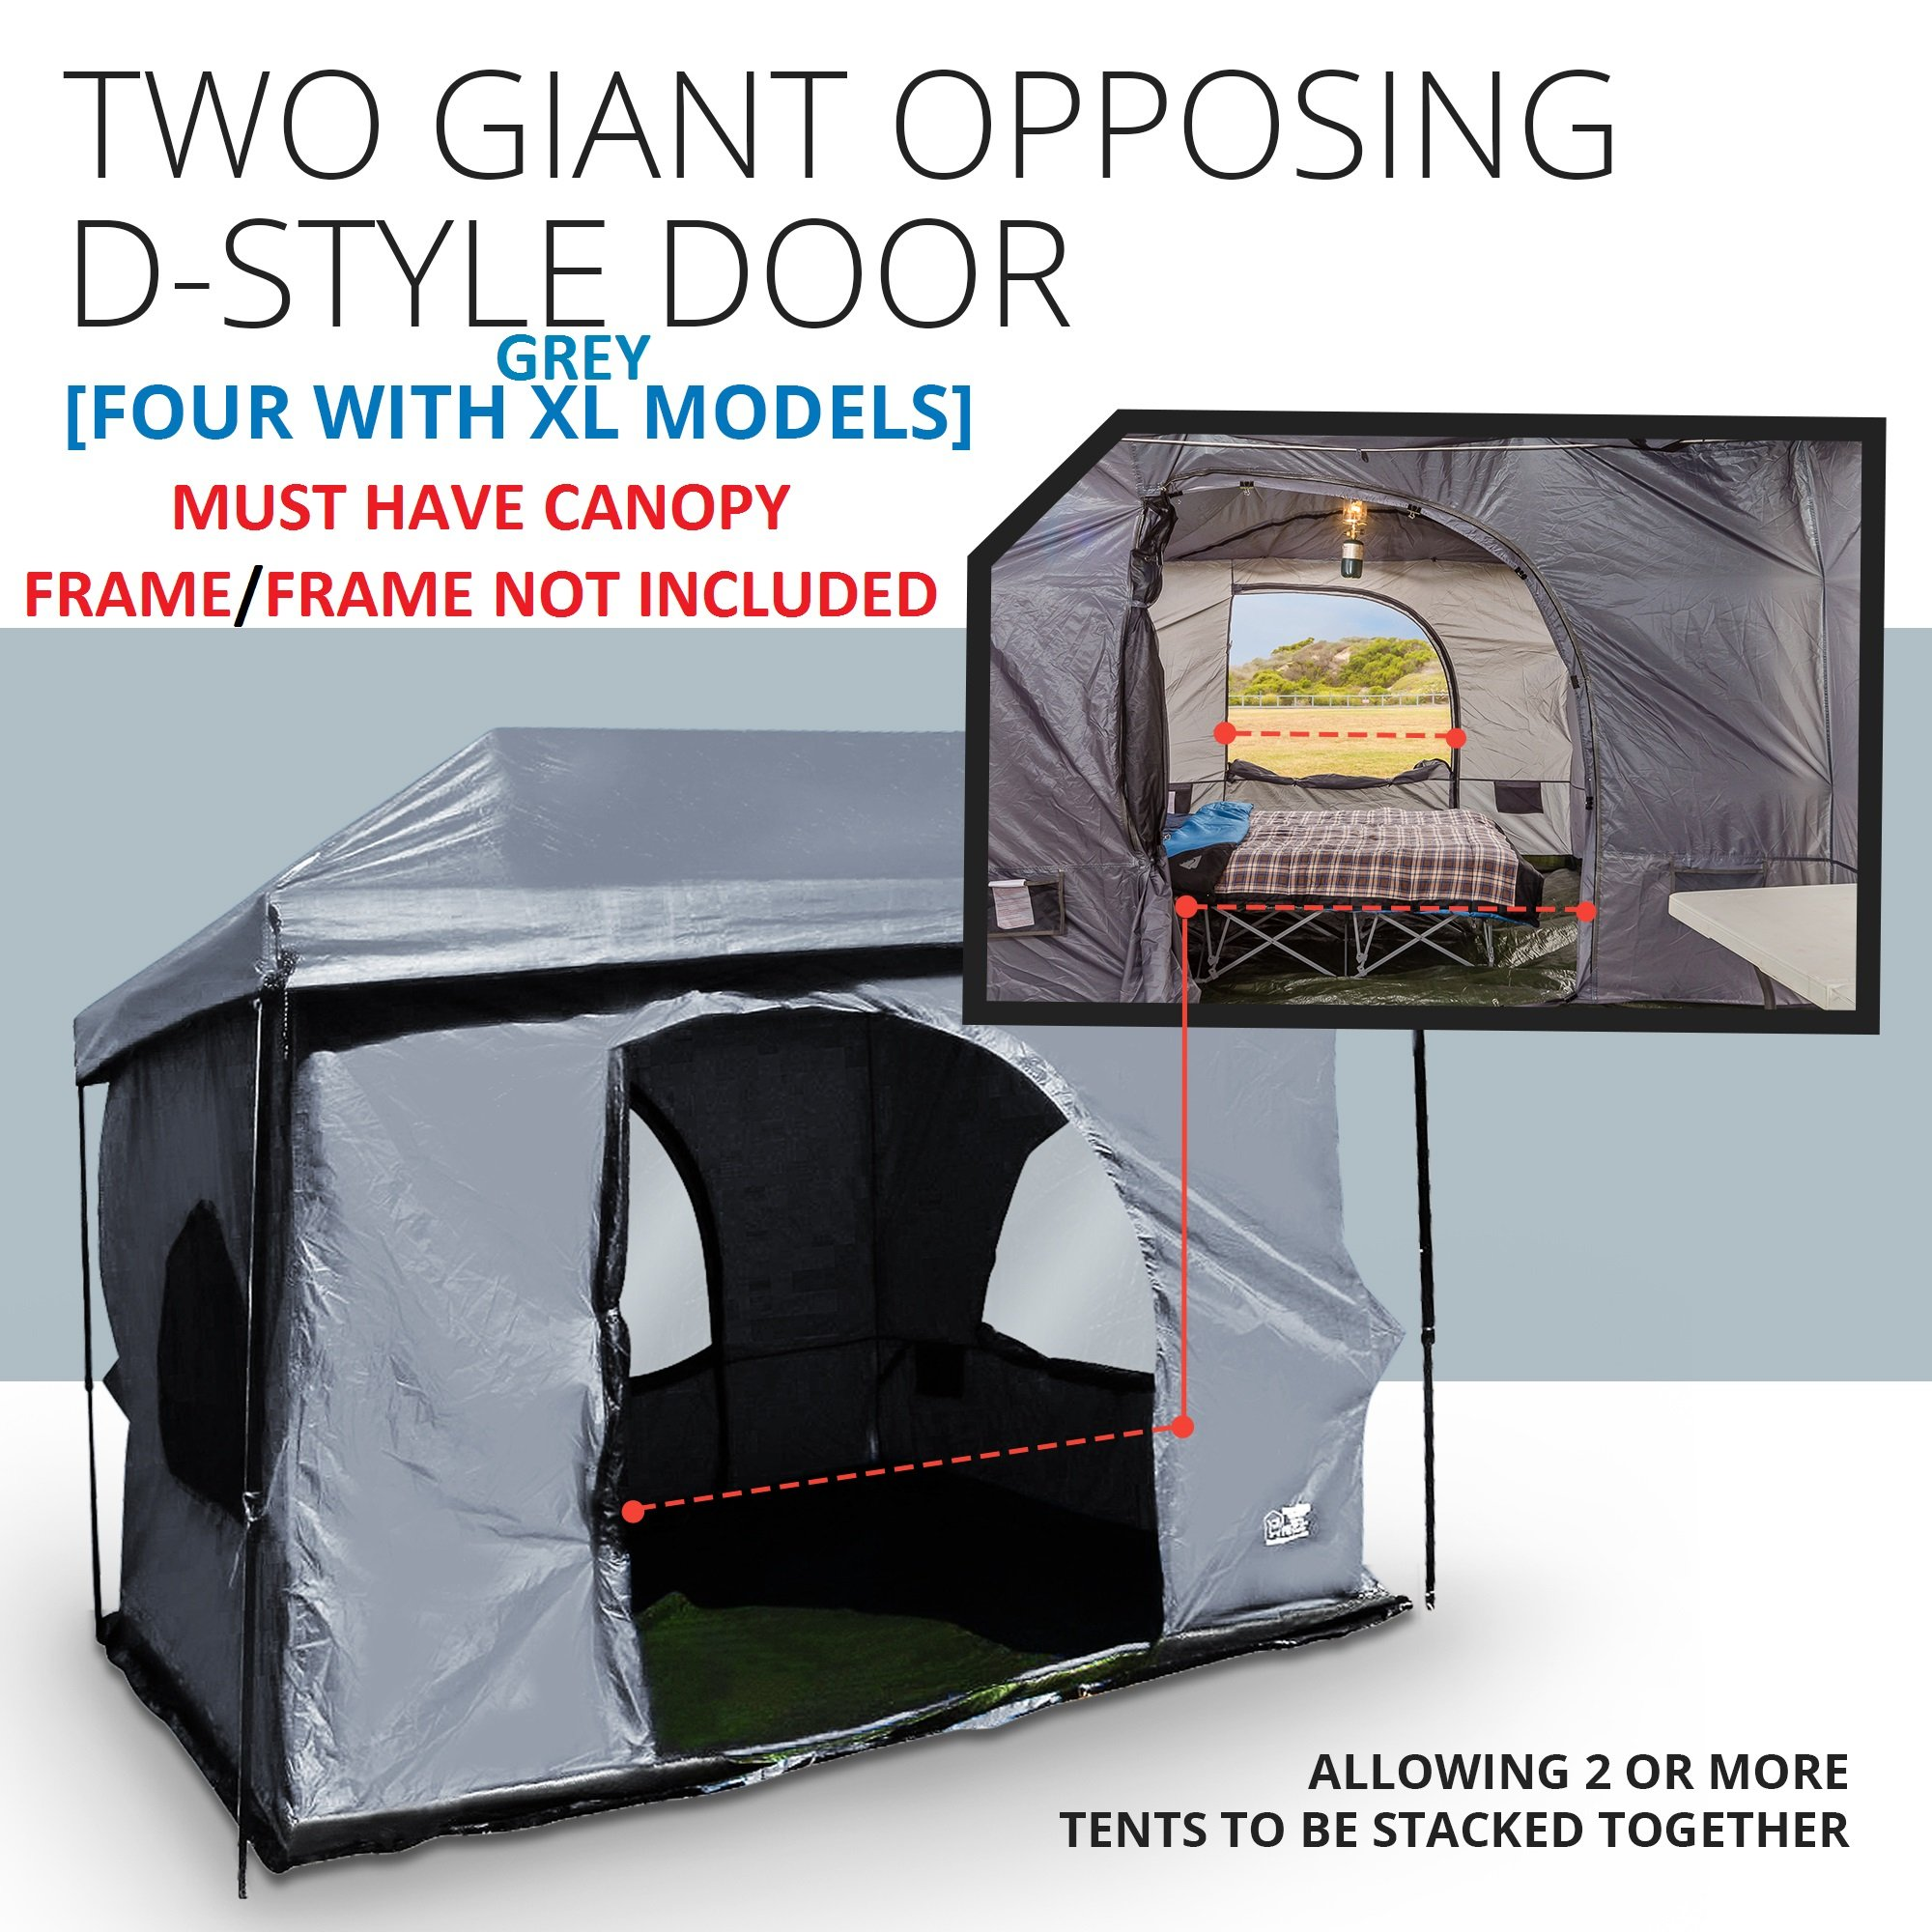 Standing Room Family Cabin Tent 8.5 FEET OF HEAD ROOM 2 or 4 Big Screen Doors Fast Easy Set Up, Full waterproof Fabric Ceiling (NOT LEAKY MESH SCREEN),FULL TUB STYLE Floor CANOPY FRAME NOT INCLUDED!